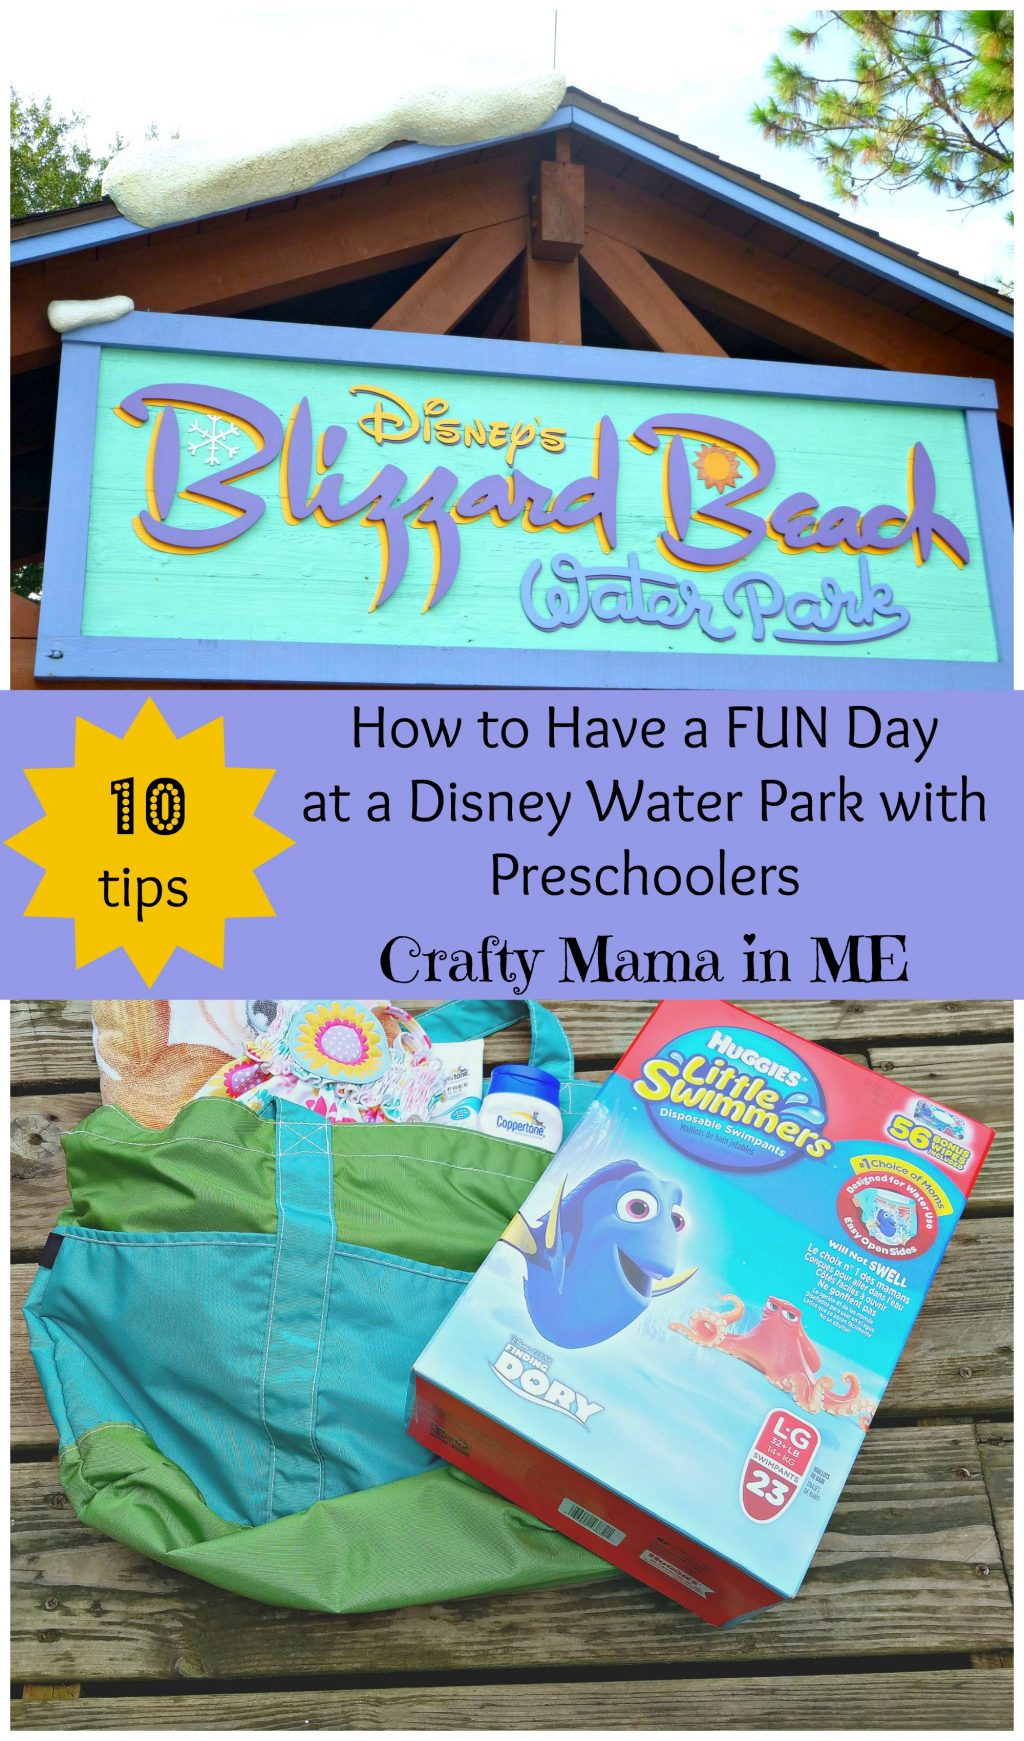 How to Have a Fun Day at a Disney Water Park with Preschoolers